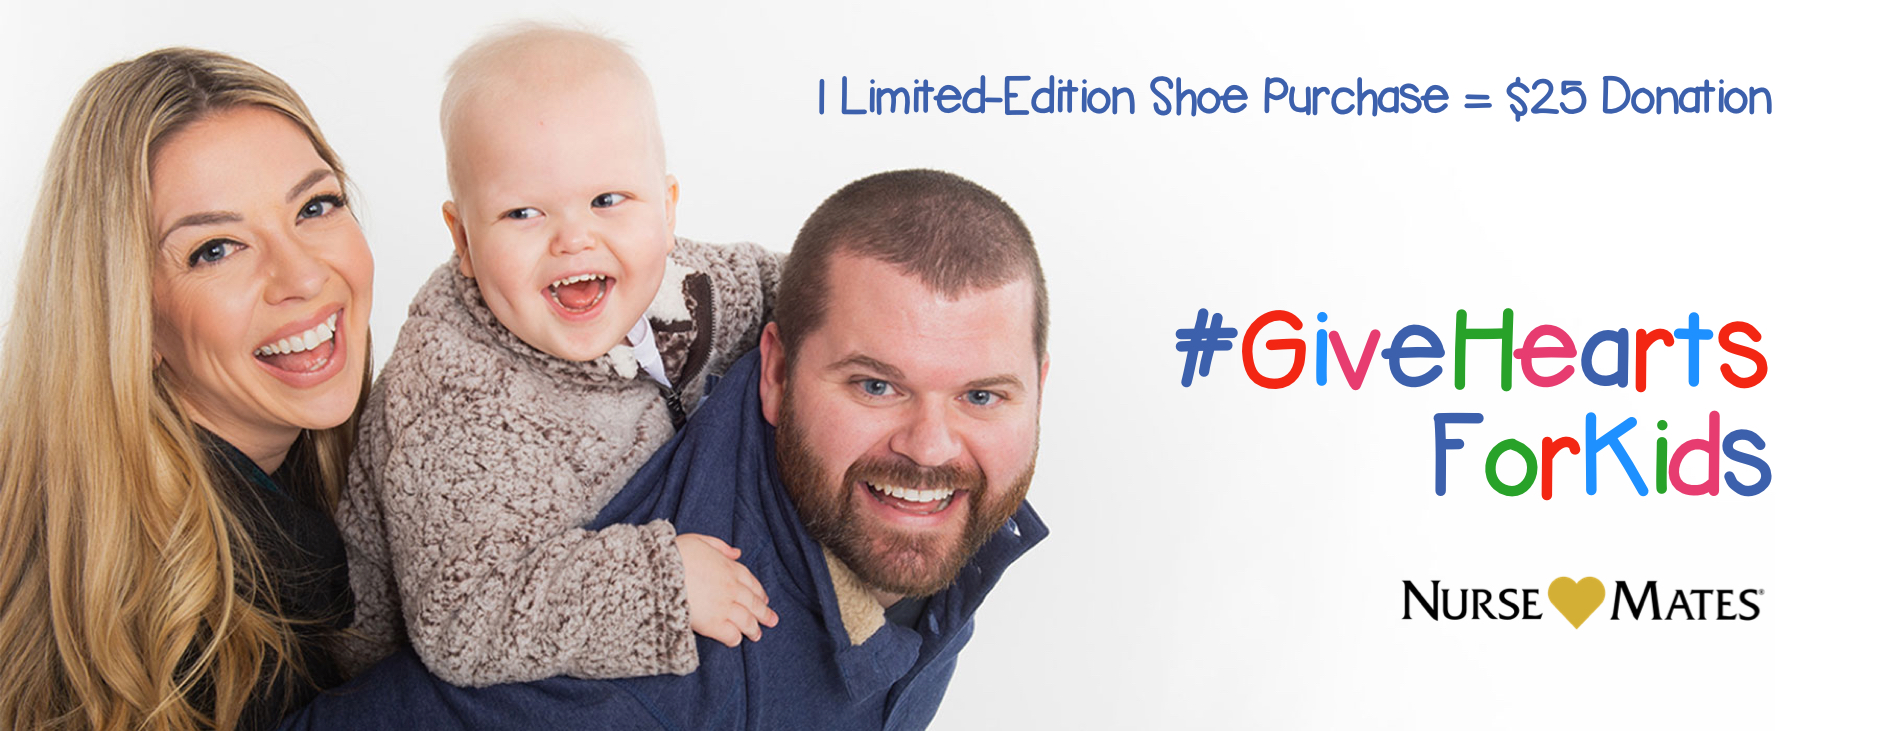 1 limited edition shoe purchase equals 25 dollar donation